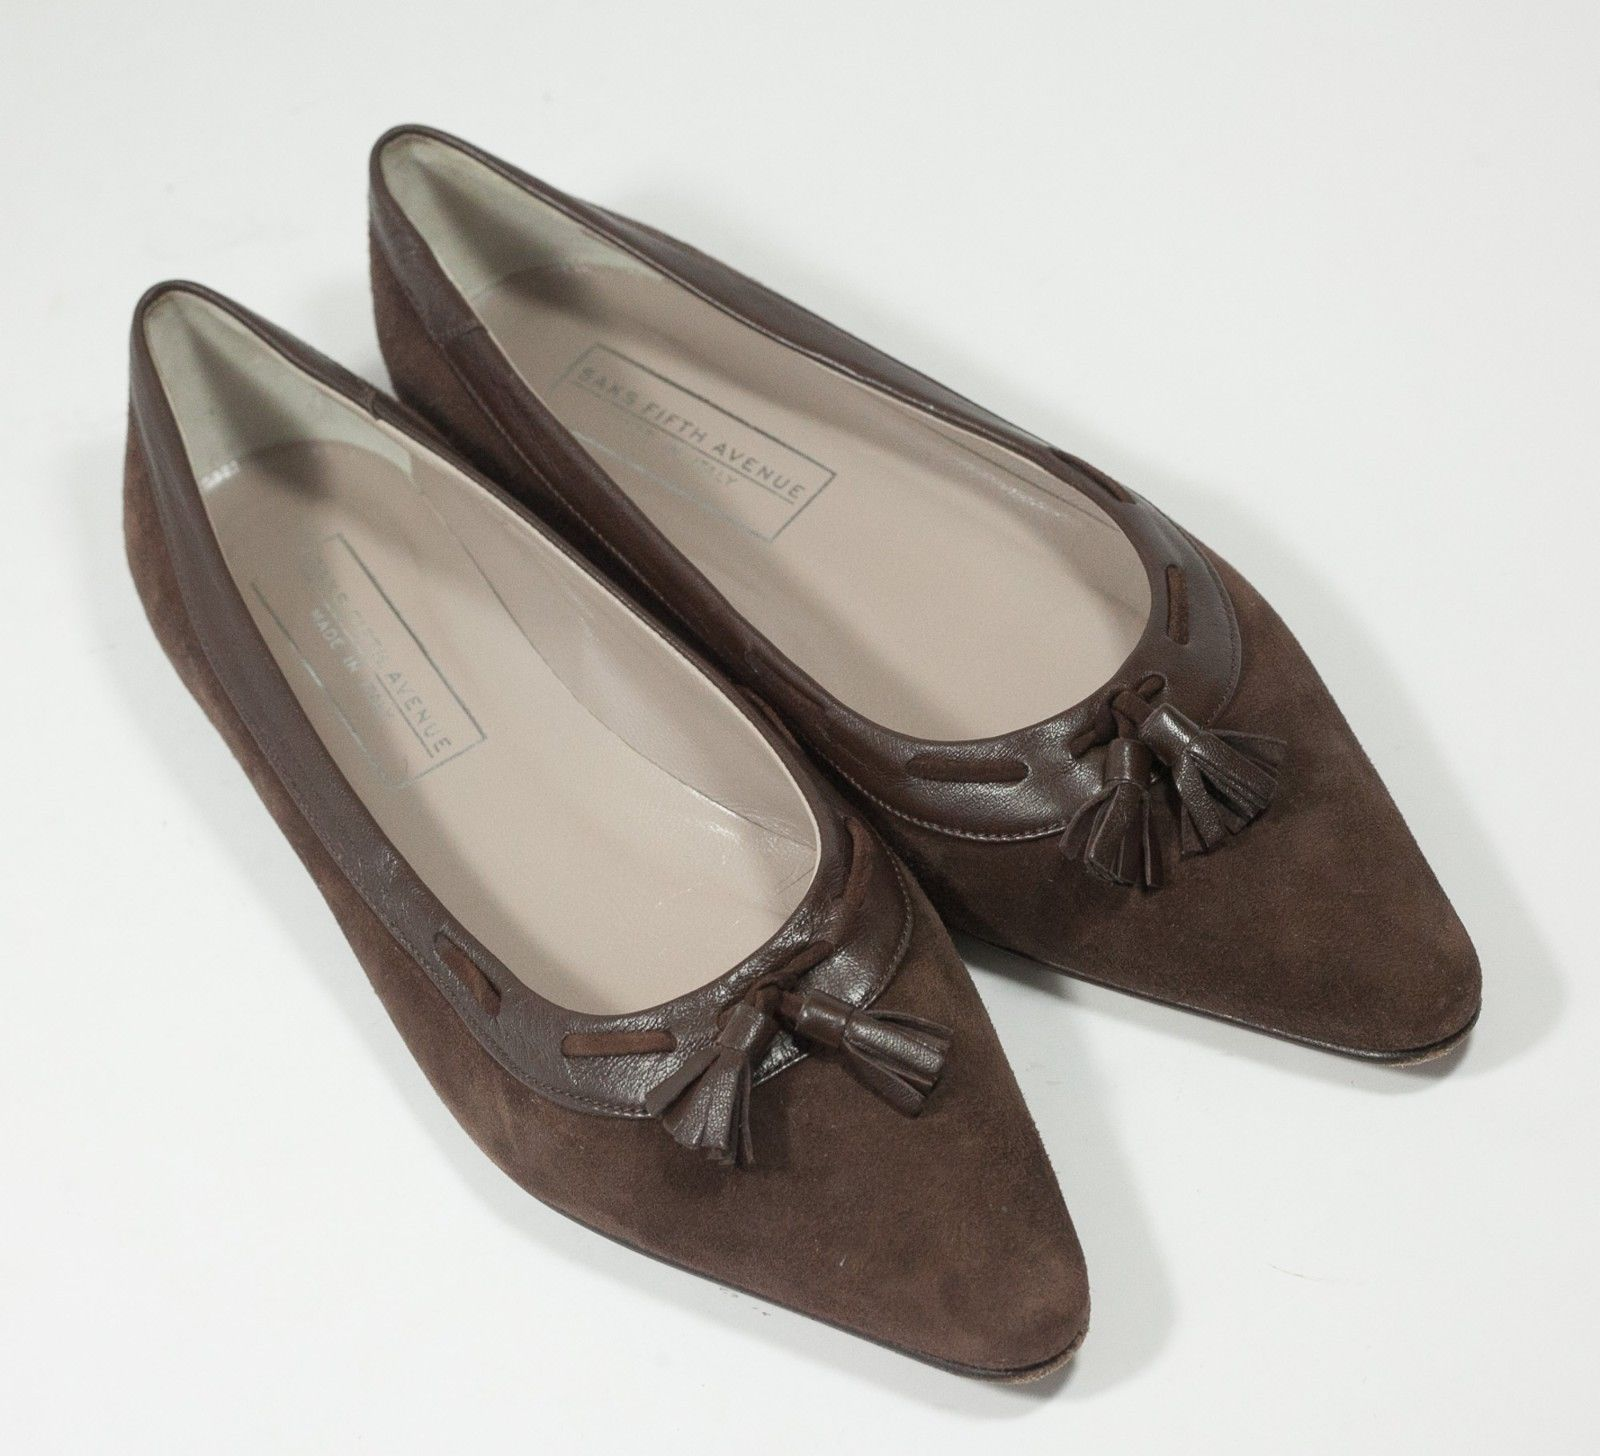 Saks Fifth Avenue leather flats 8 B chocolate brown tassle suede Made in Italy